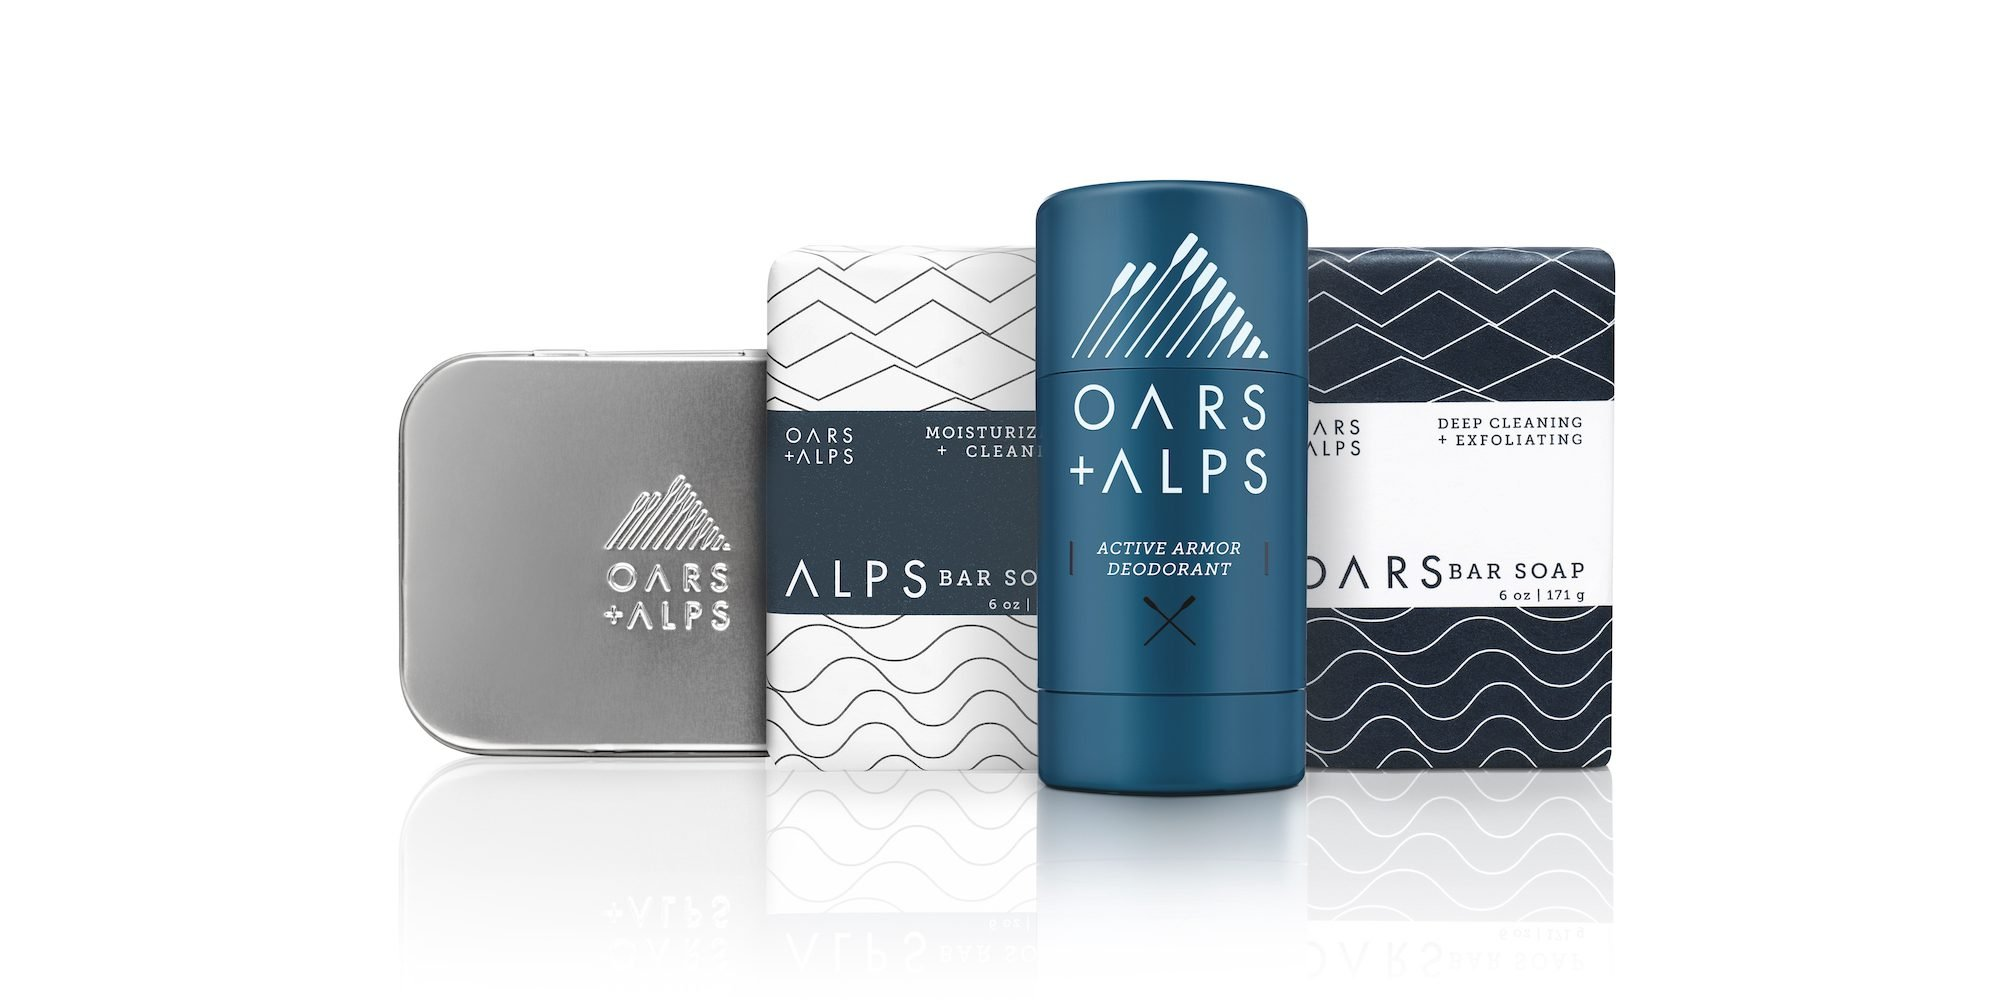 How Oars + Alps Went From Launch To Exit In Less Than 36 Months